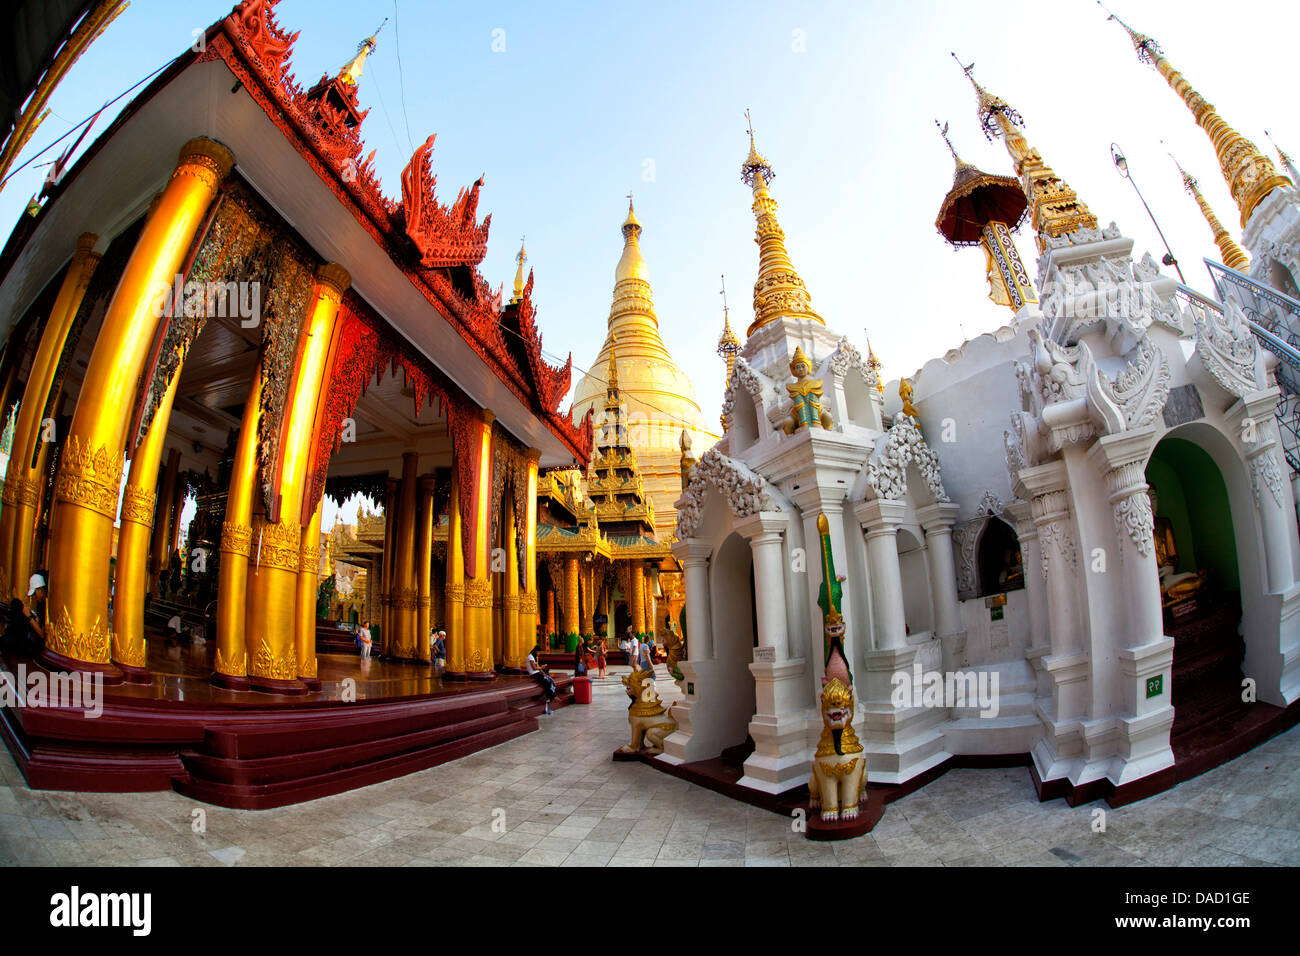 Fisheye image of temples and shrines at Shwedagon Paya (Pagoda), Yangon (Rangoon), Myanmar (Burma), Asia - Stock Image